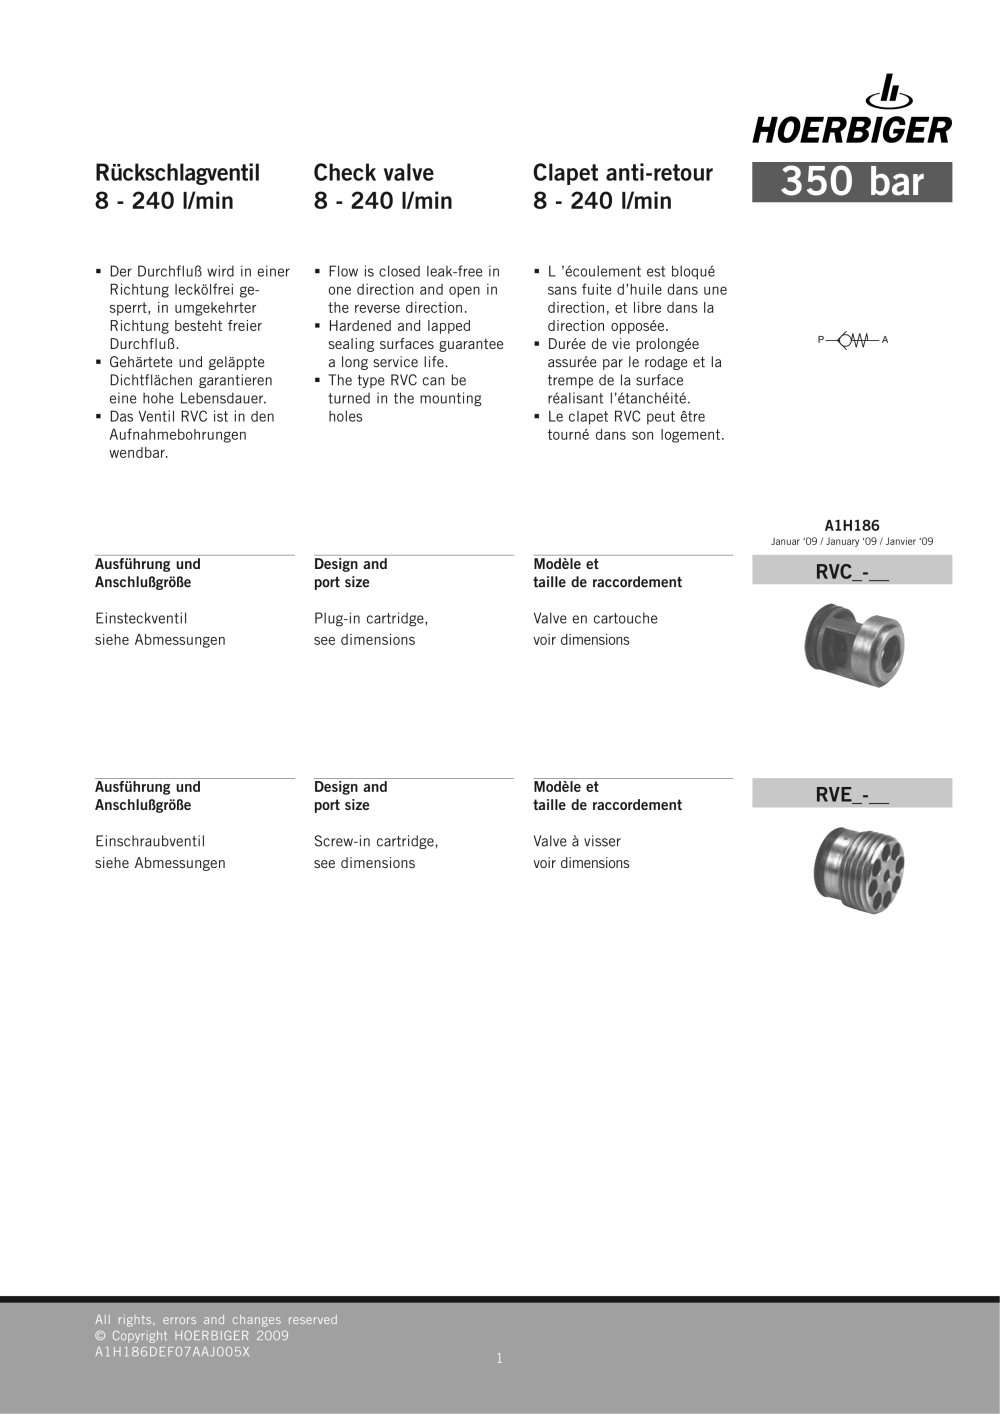 Check and flow control valves hoerbiger automatisierungstechnik check and flow control valves 1 36 pages buycottarizona